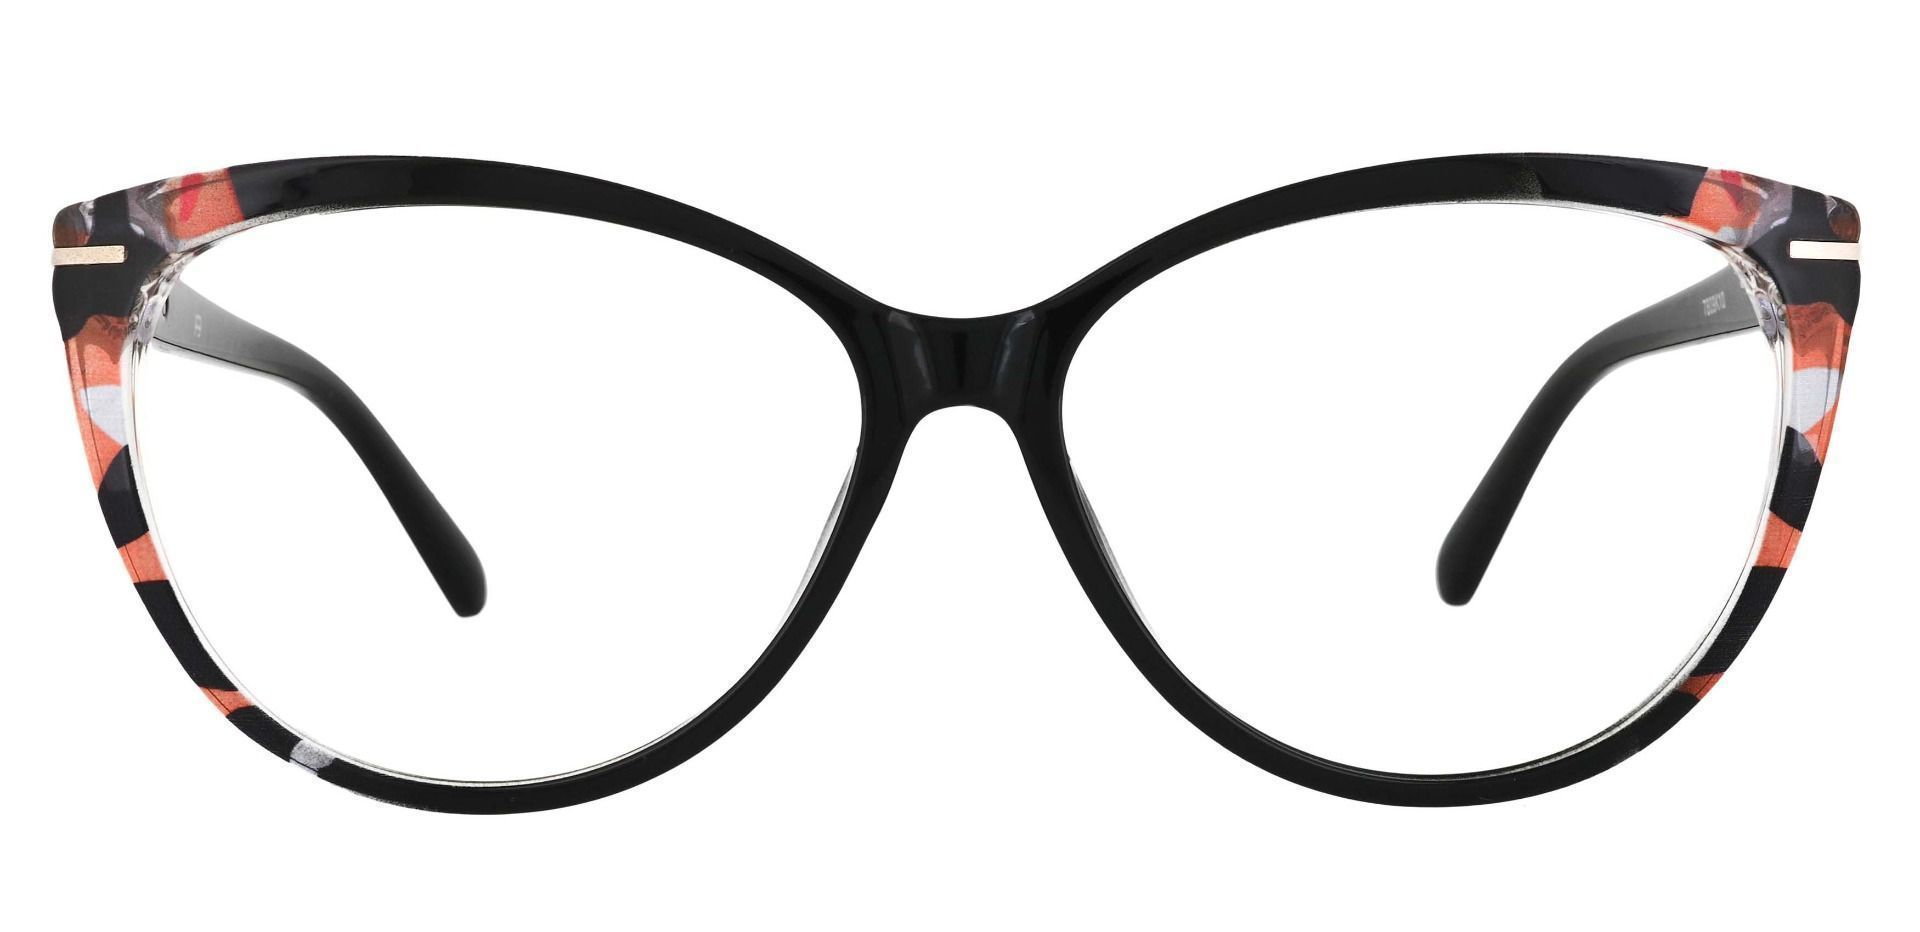 Maggie Cat Eye Prescription Glasses - Black With Peach Crystal Accents